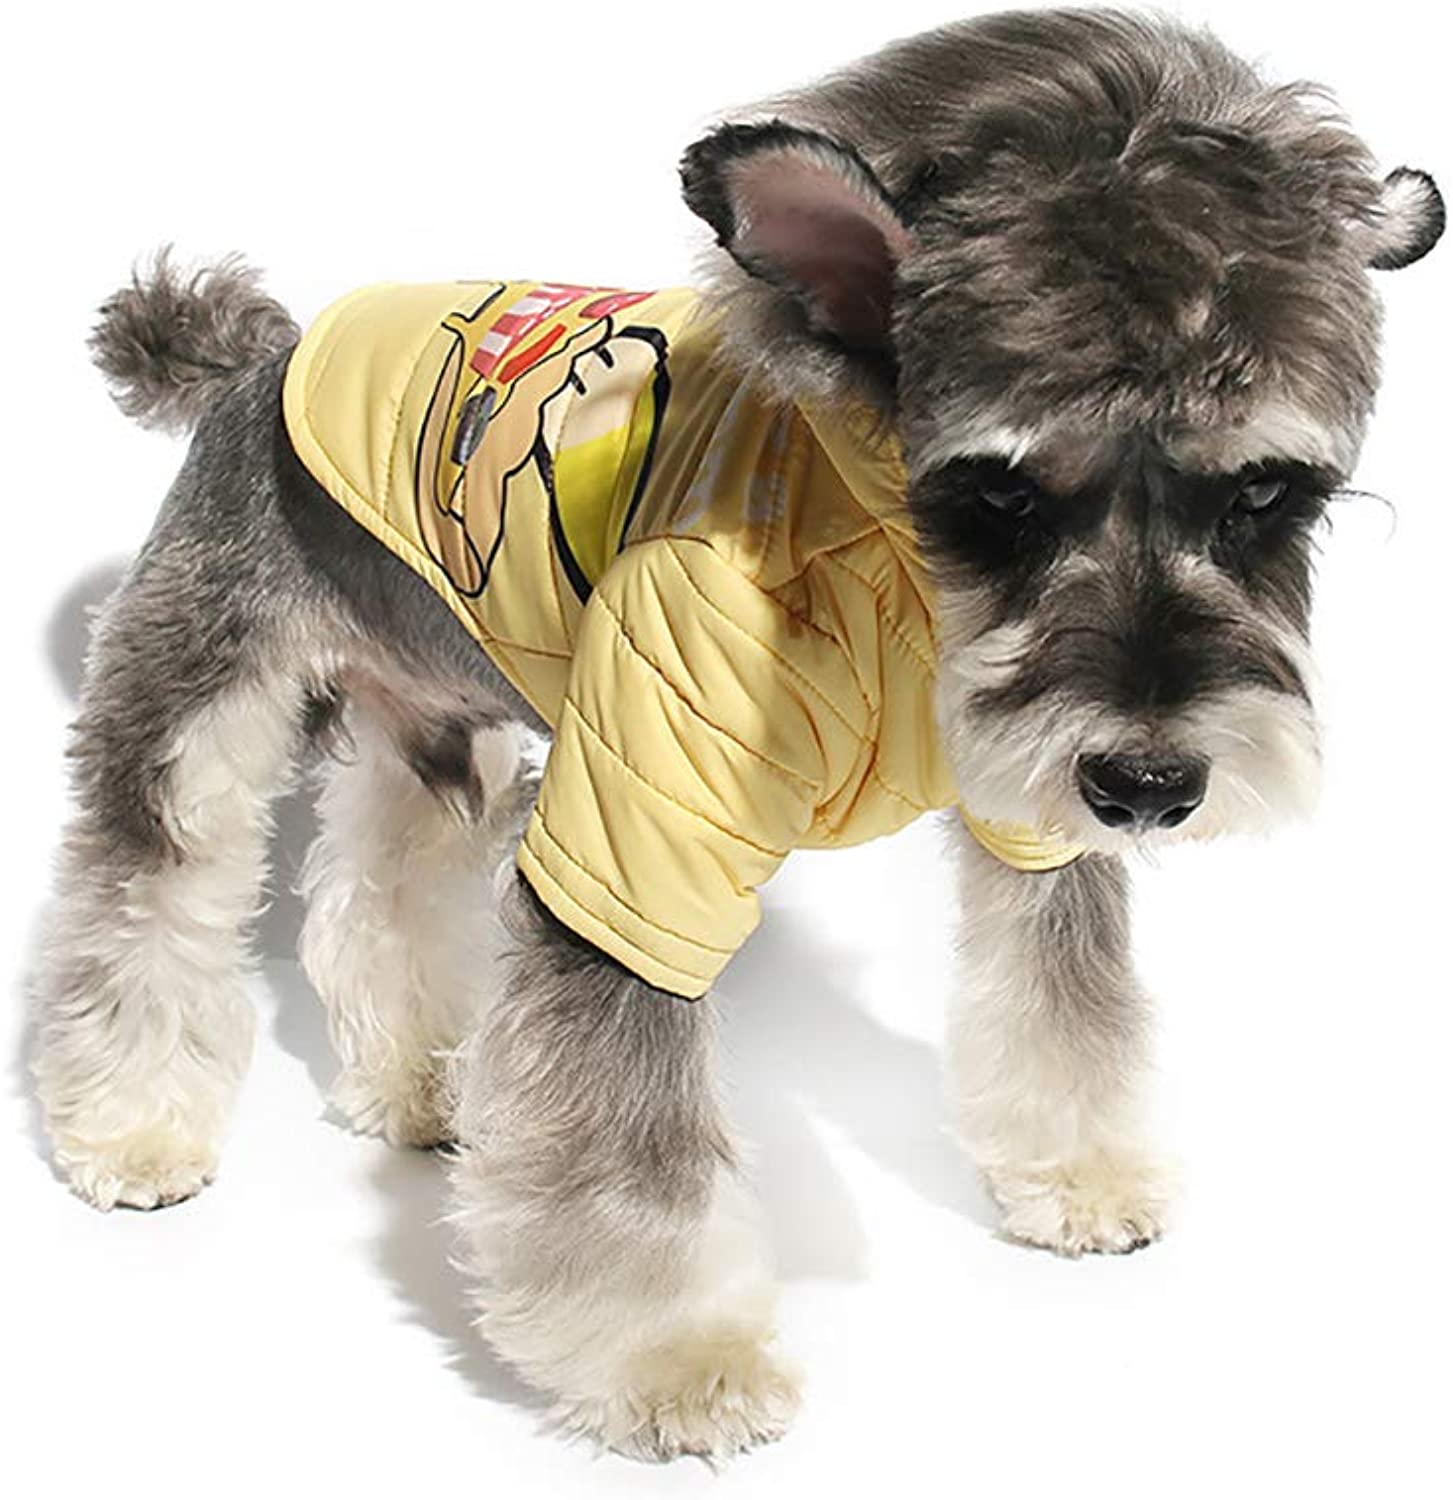 Fashion Dog Hoodies 2 Legs Pet Clothes Cotton Puppy Winter Sweatshirt Warm Sweater Coat Suitable for Outdoor Walks,Yellow,L